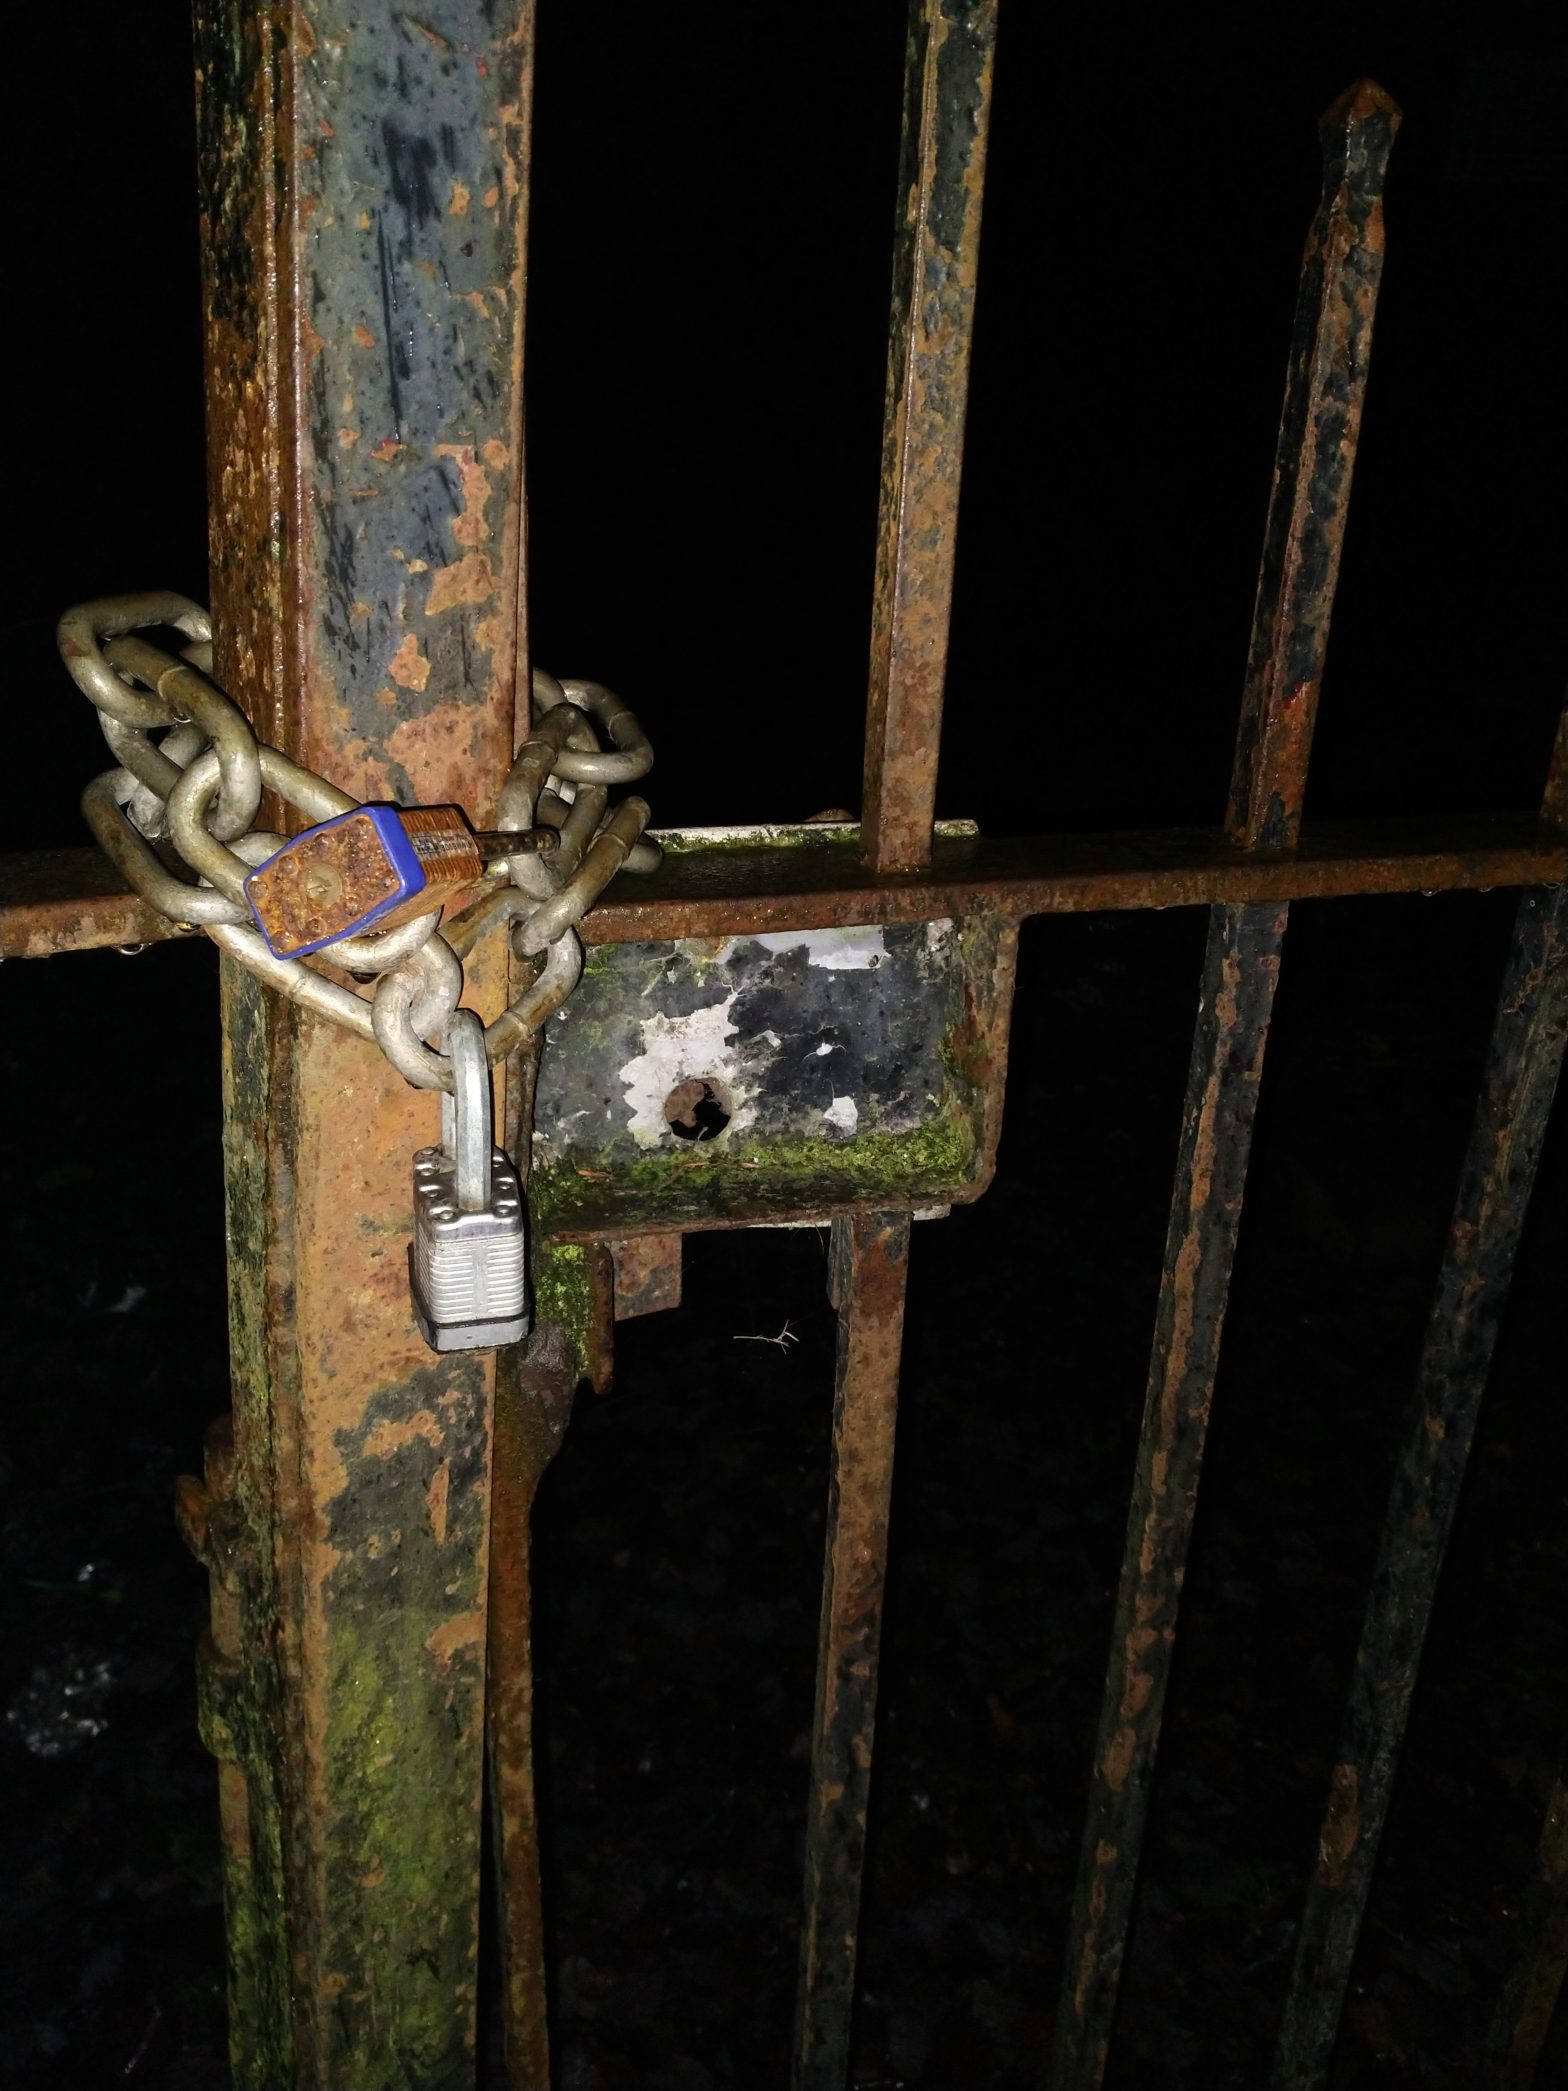 Two padlocks, one rusty, and the old frame of a lock for the gate. The backdrop is black and you can just make out items in the background lit by the flash.